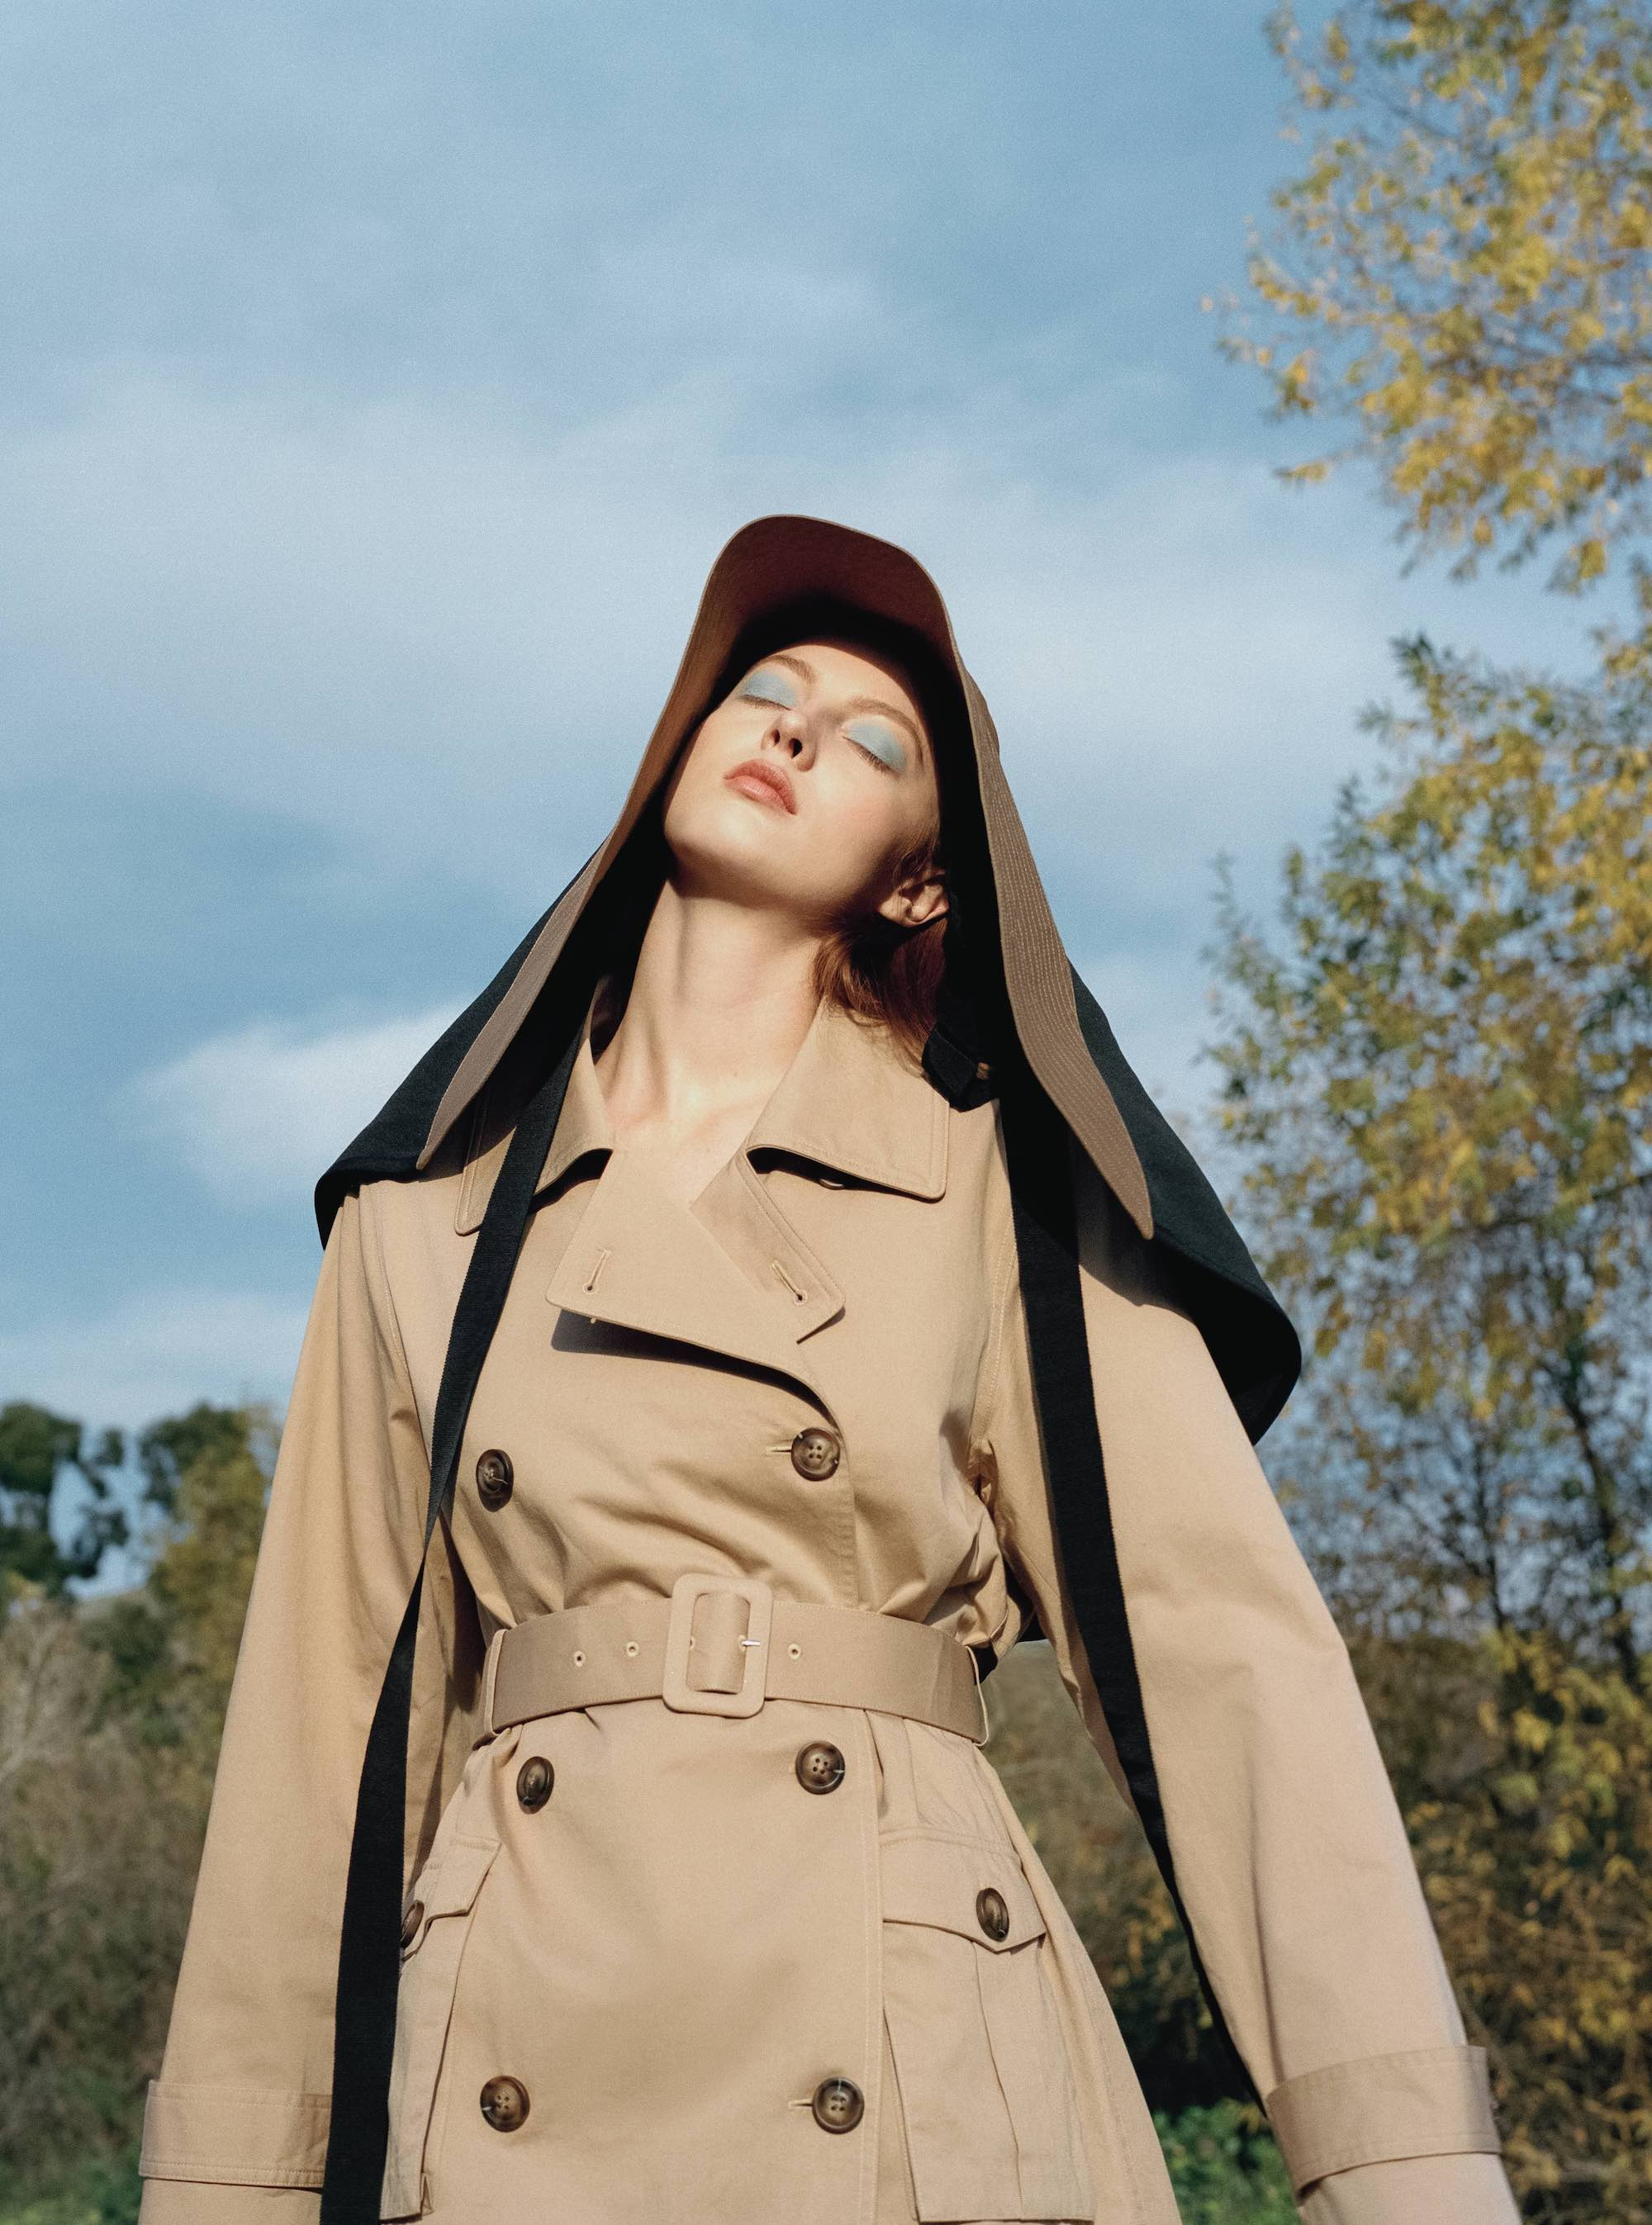 Self-Portrait for Wonderland Spring issue trench